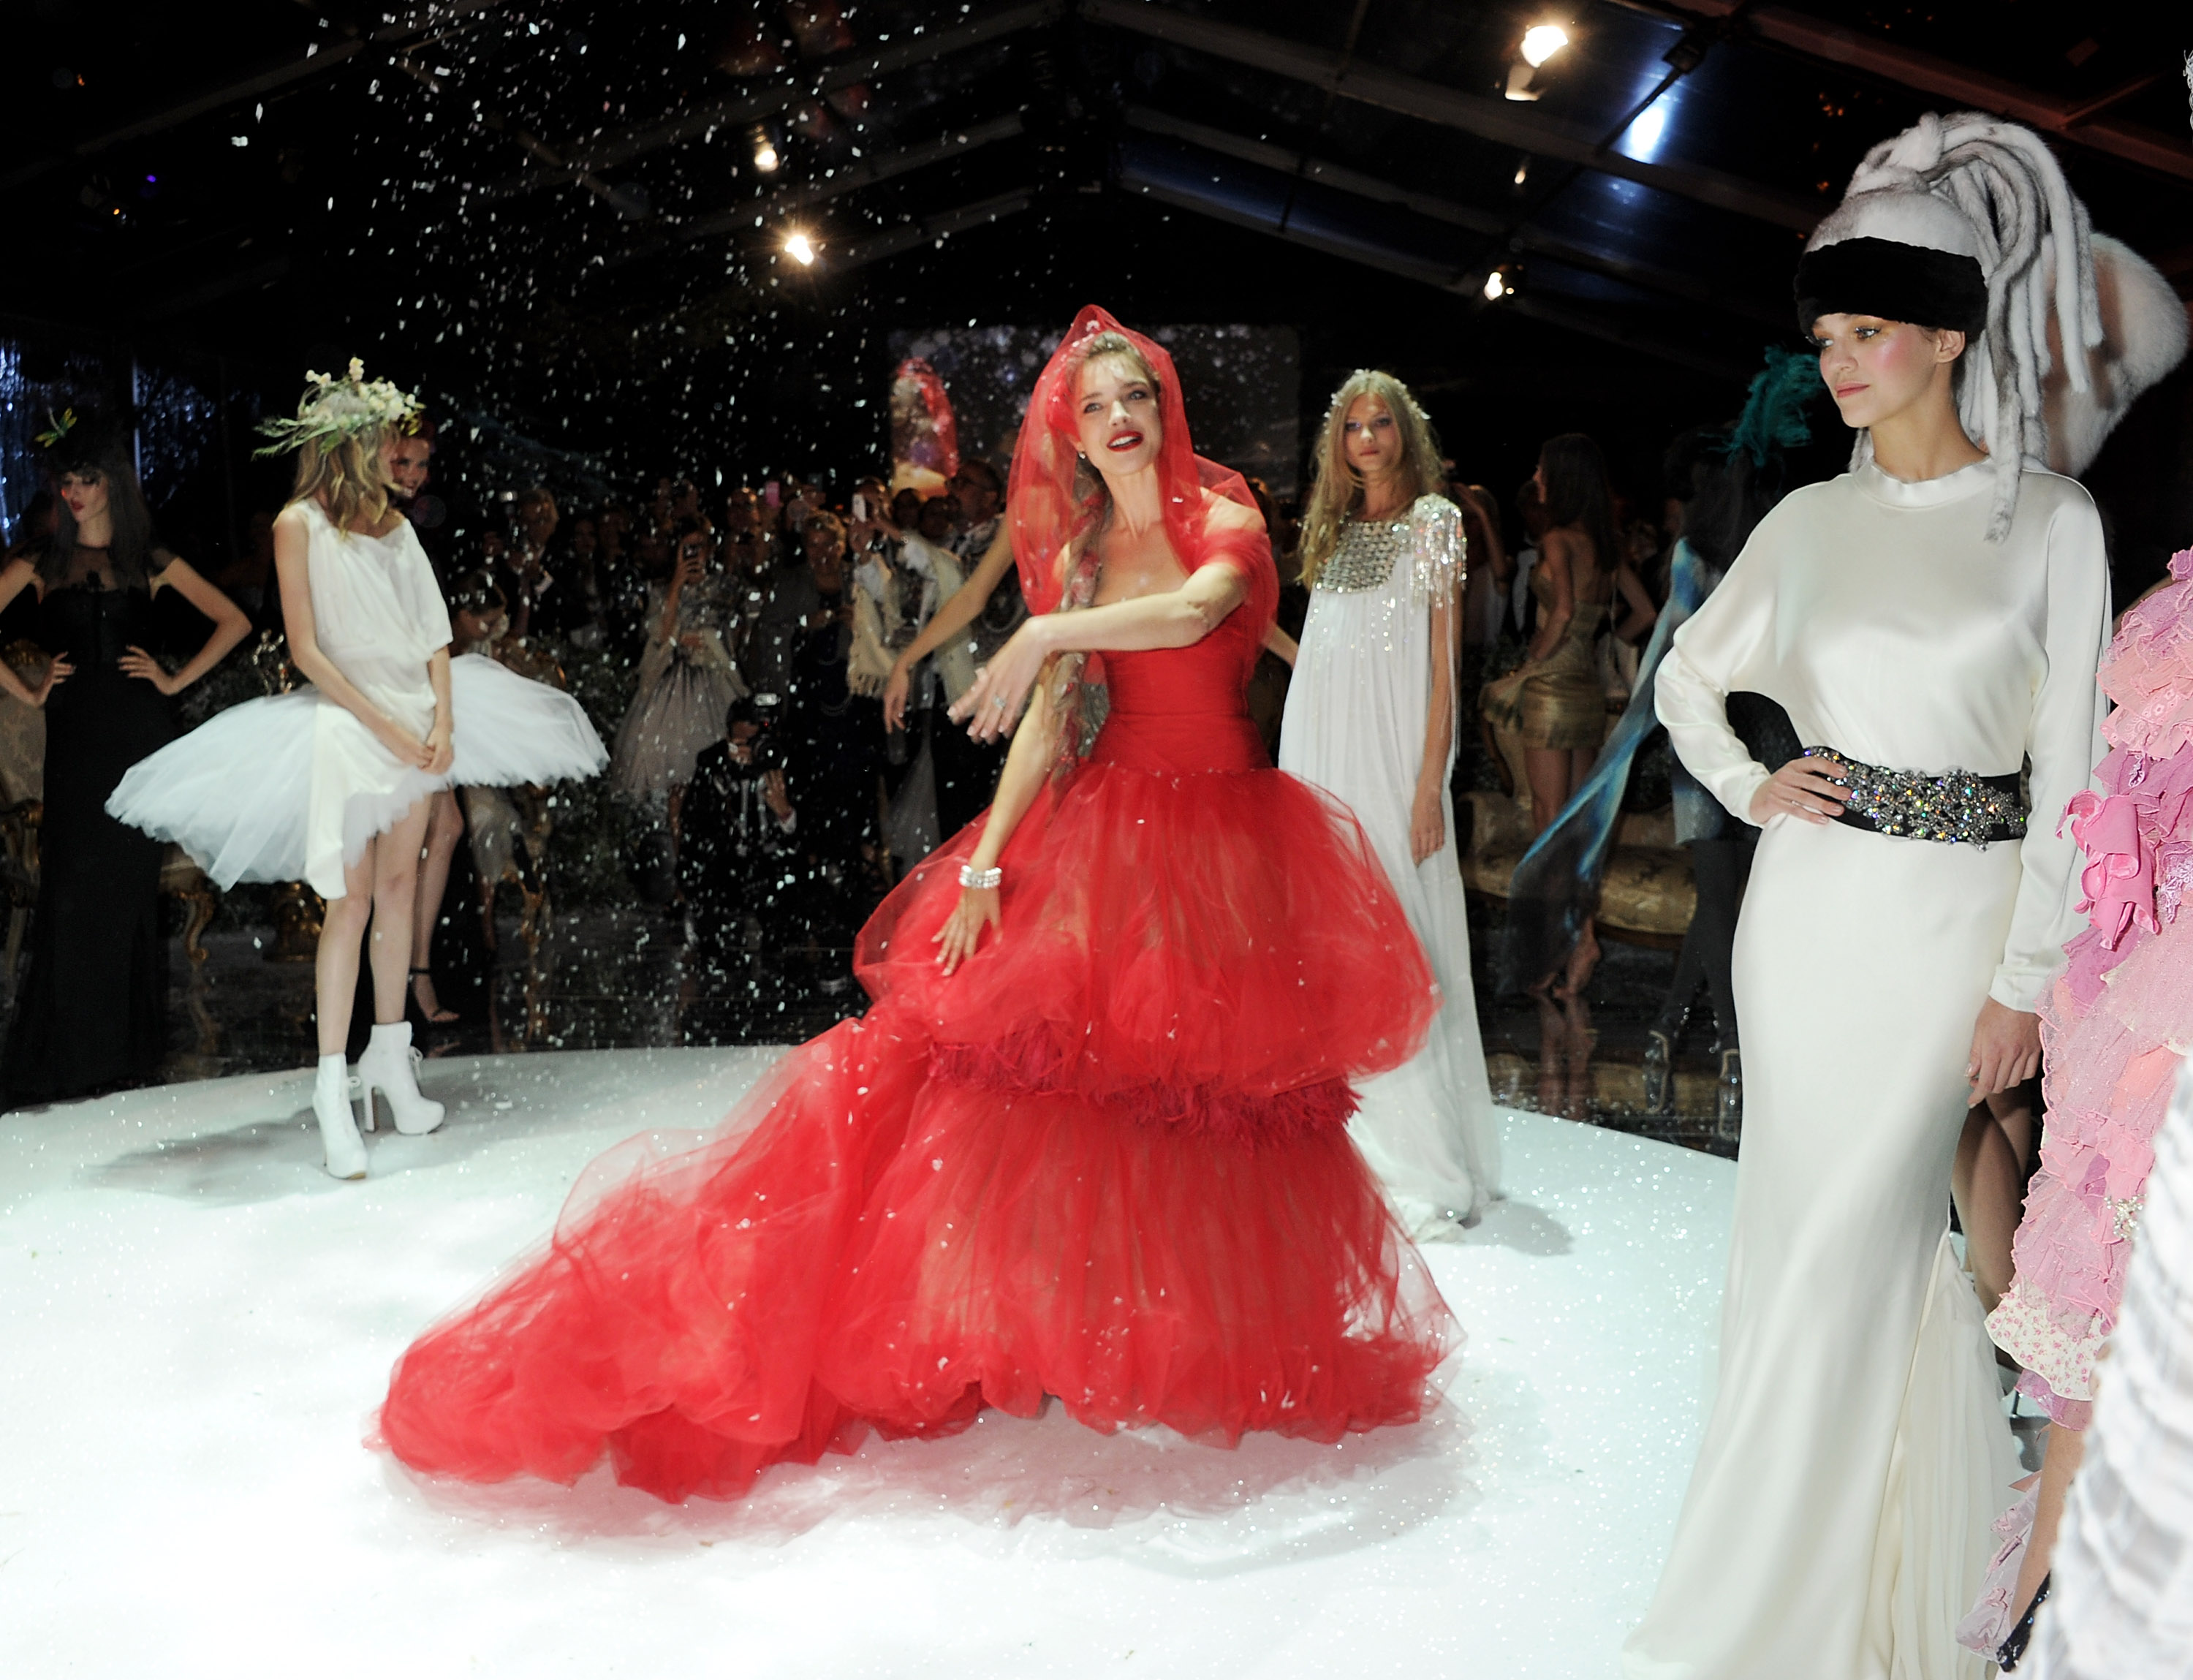 Natalia Vodianova's Love Ball